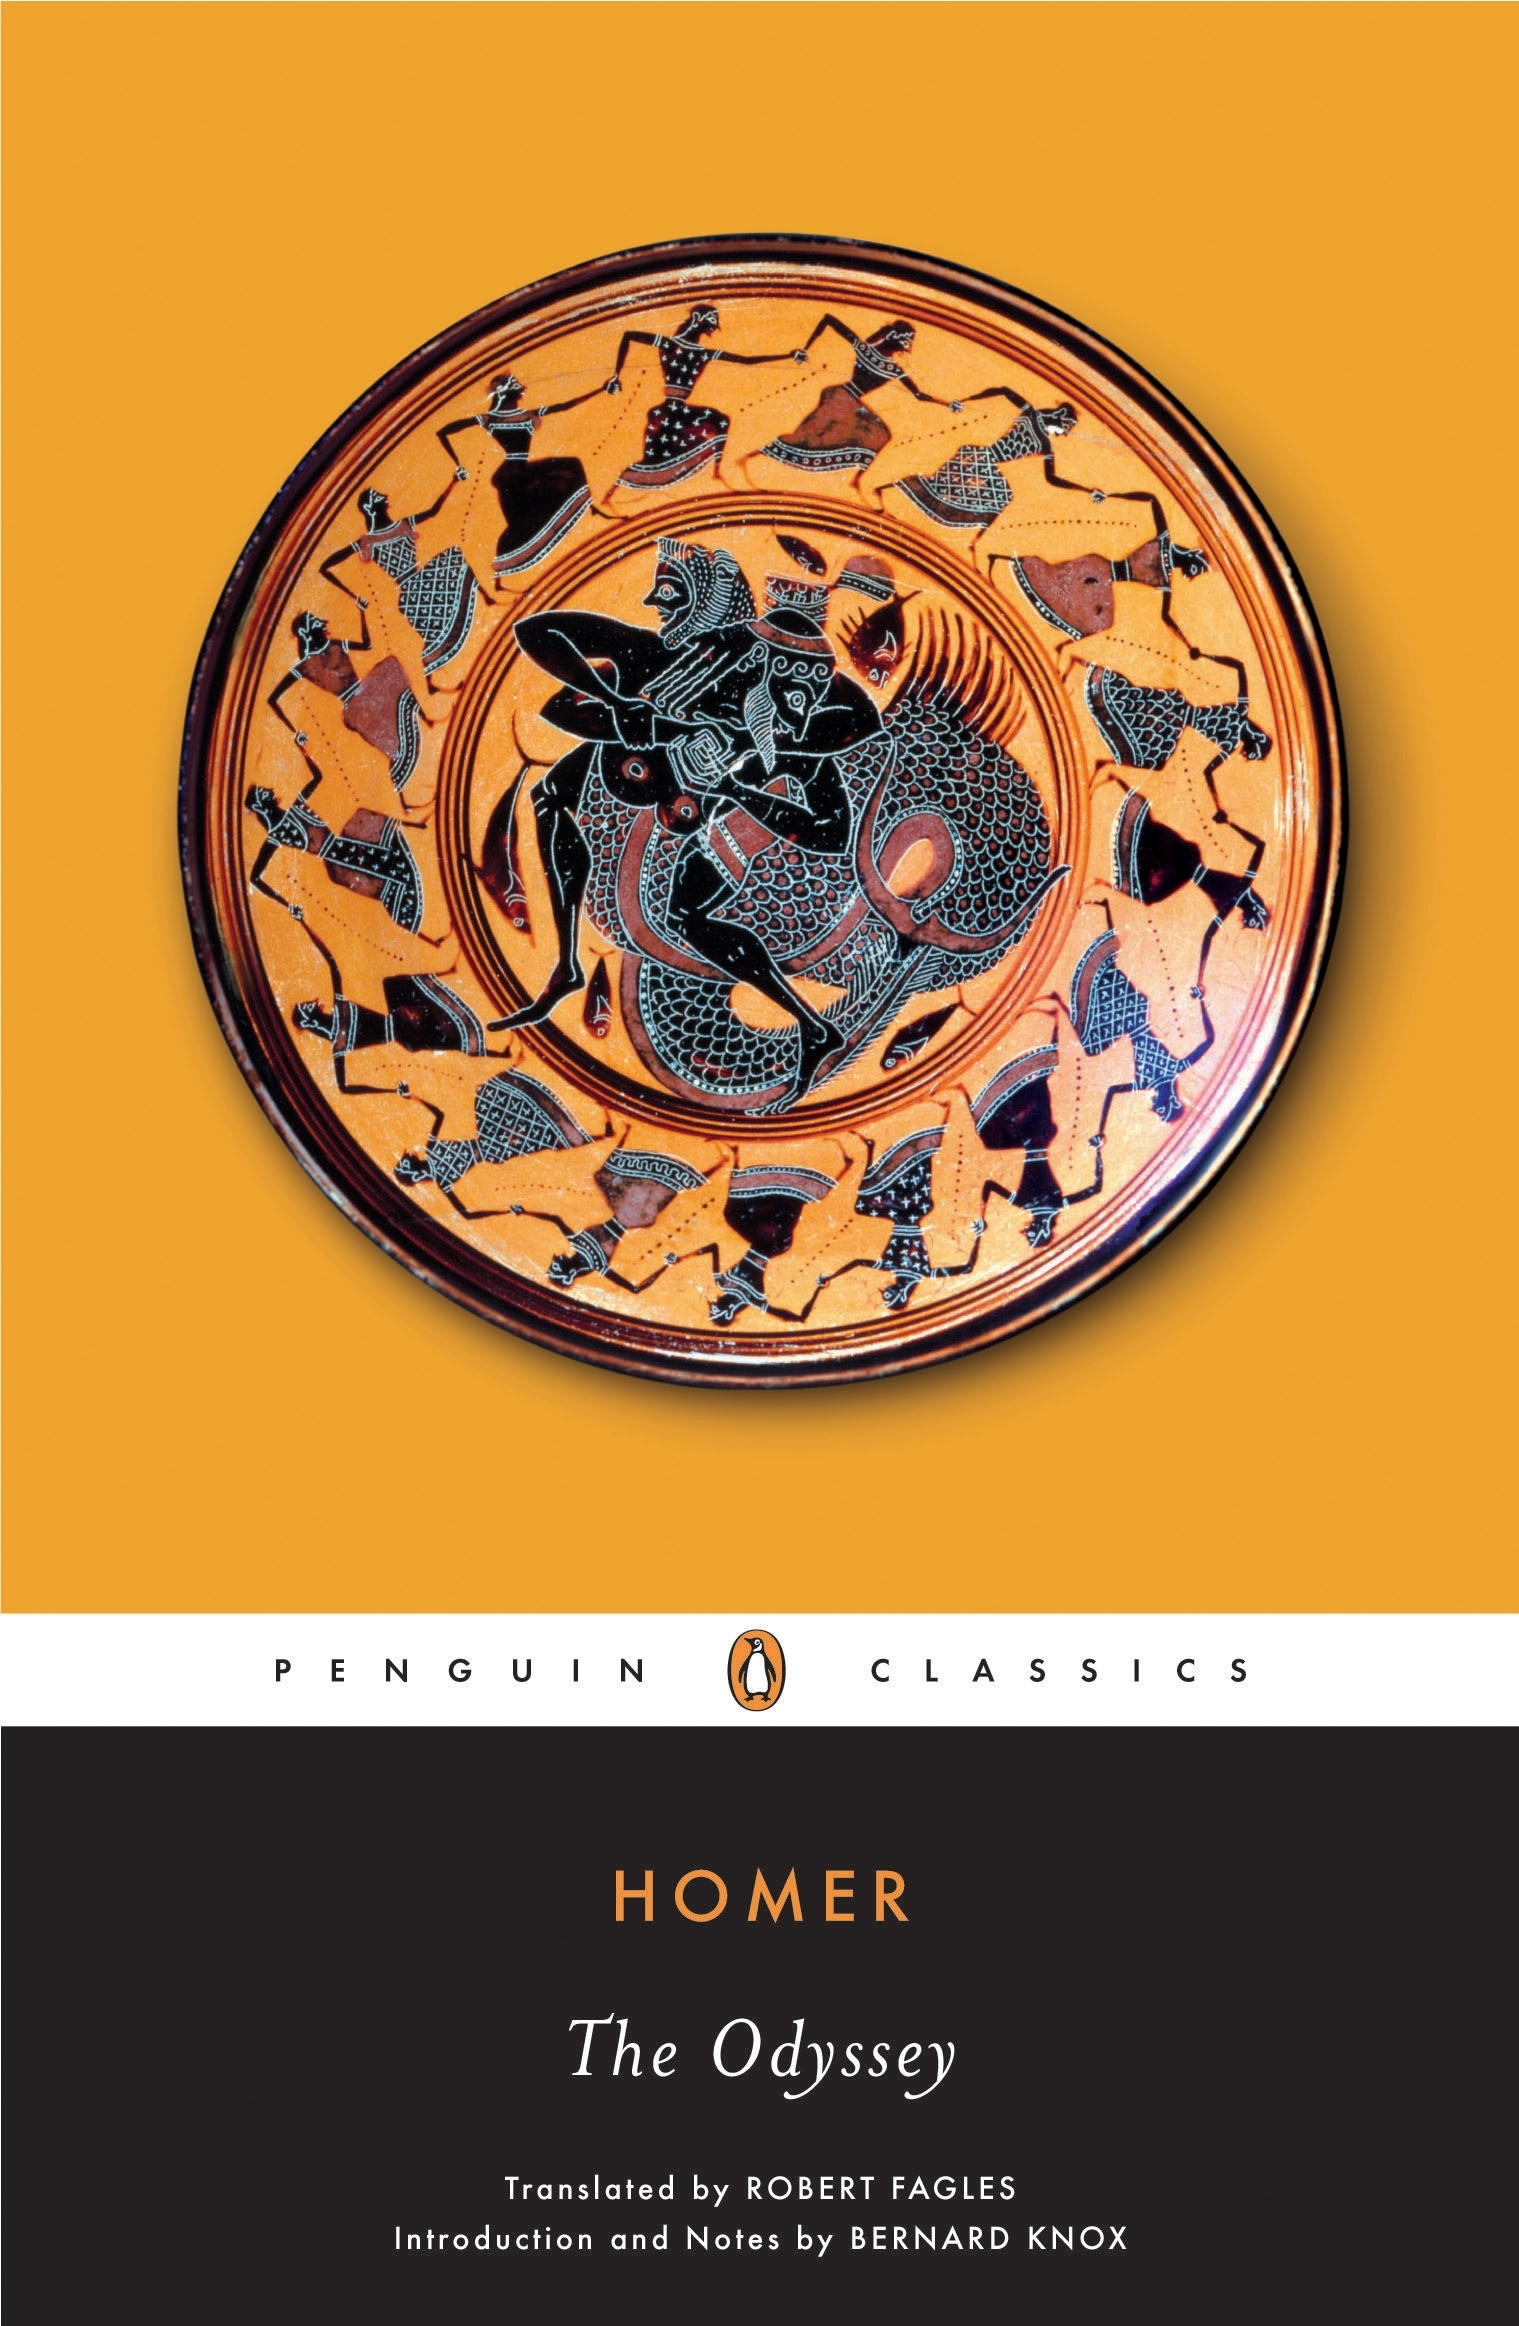 an analysis of odysseus struggles his way back home in the odyssey by homer Homer's odyssey term paper an elaborate lie to purchase time for negotiation and for odysseus to finally make his way home hinder him in his way back.